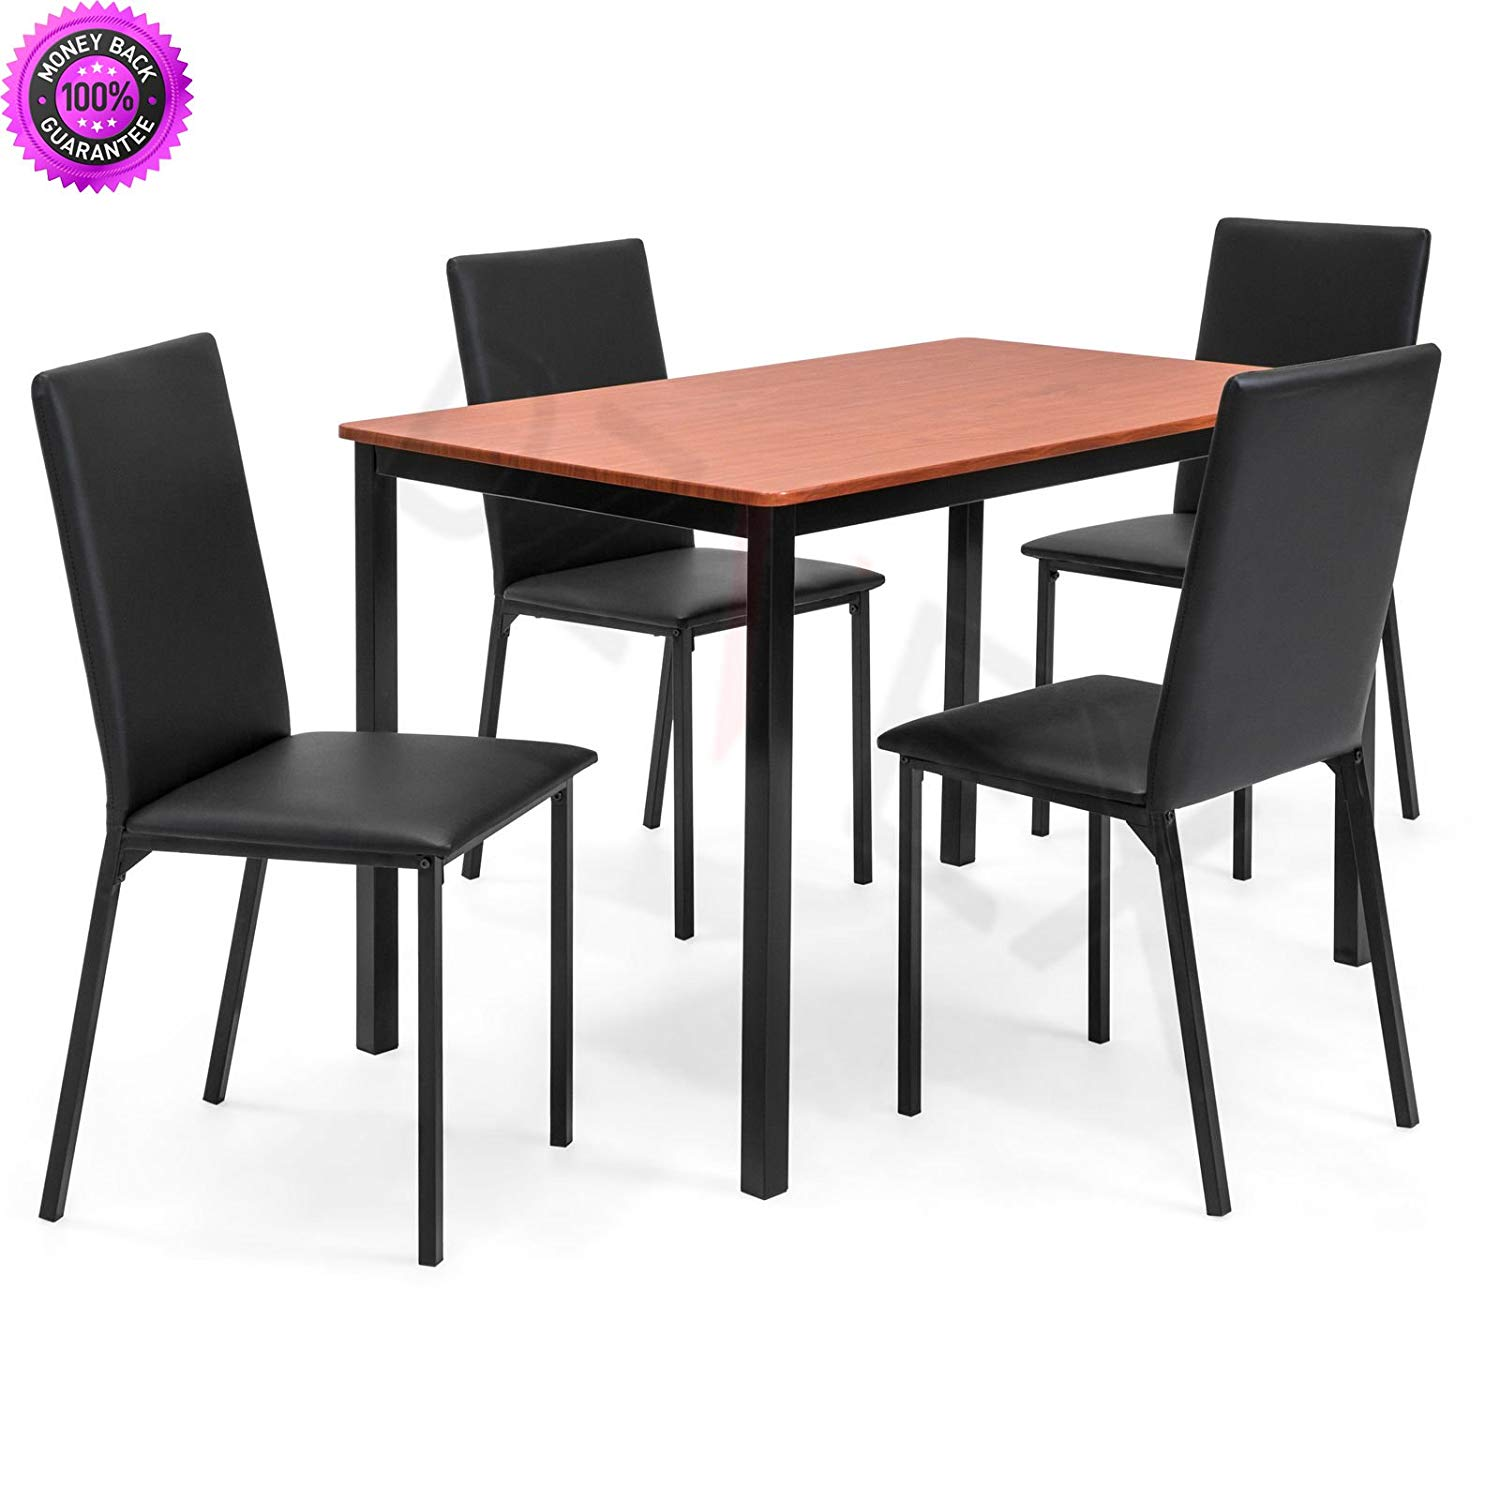 Kitchen Tables For Cheap: Cheap Rectangle Dining Tables, Find Rectangle Dining